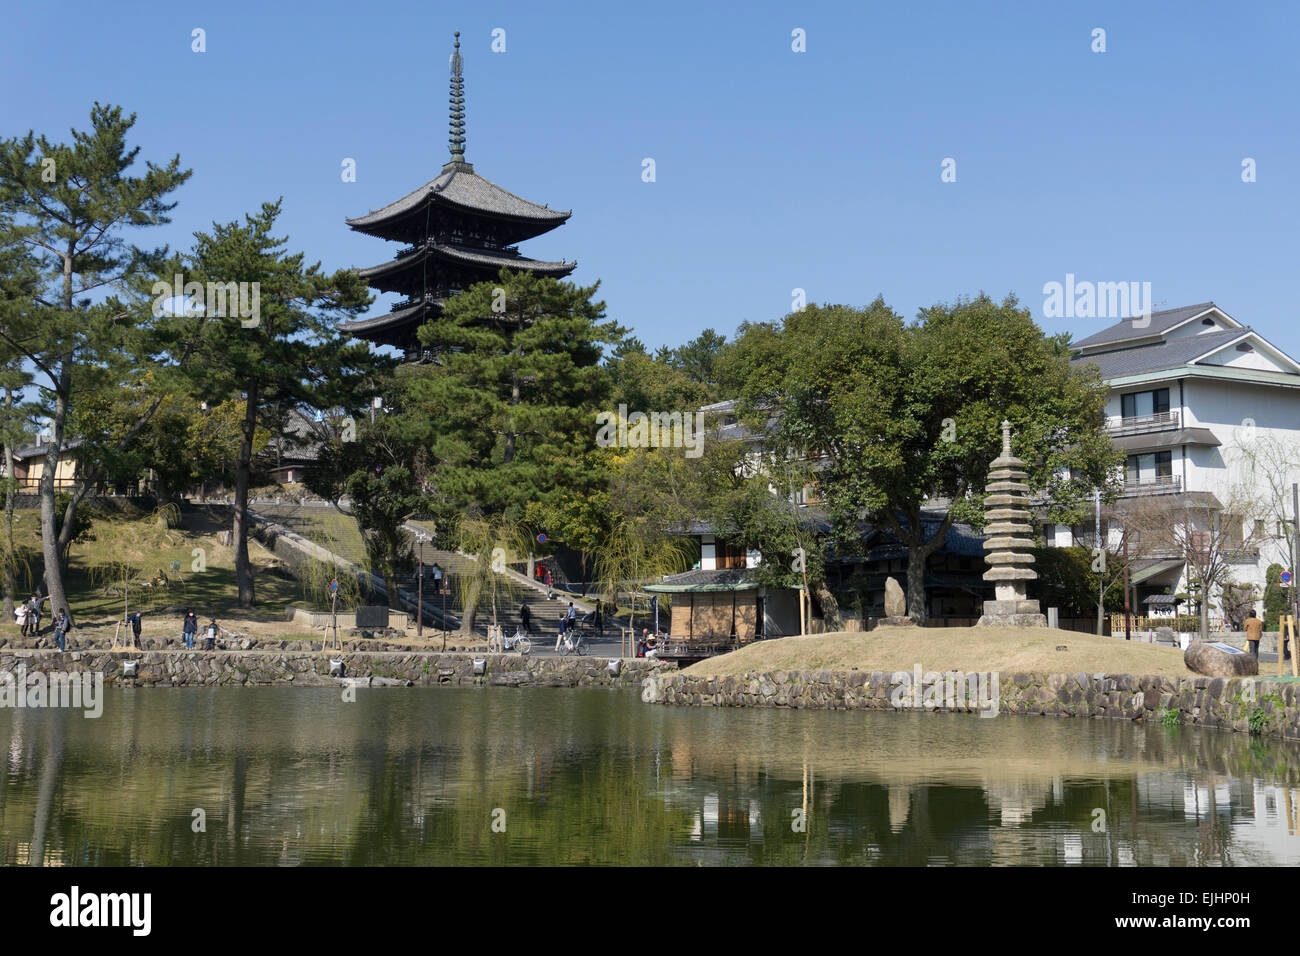 Japanese pagoda tower above trees at Kofukuji temple in Nara, Japan. In the foreground is a small restaurant on - Stock Image